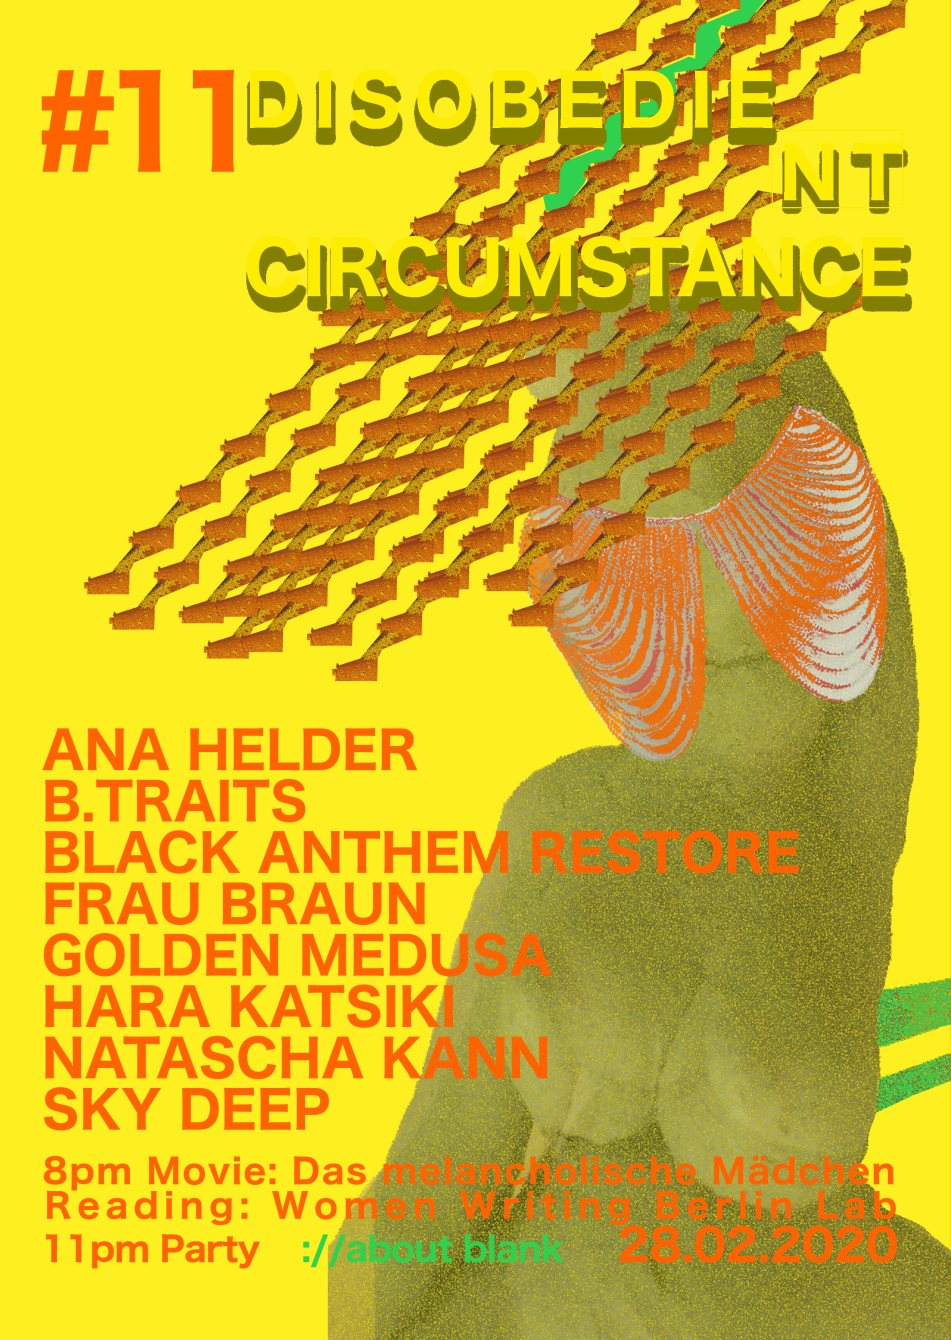 Disobedient Circumstance #11 - Flyer front